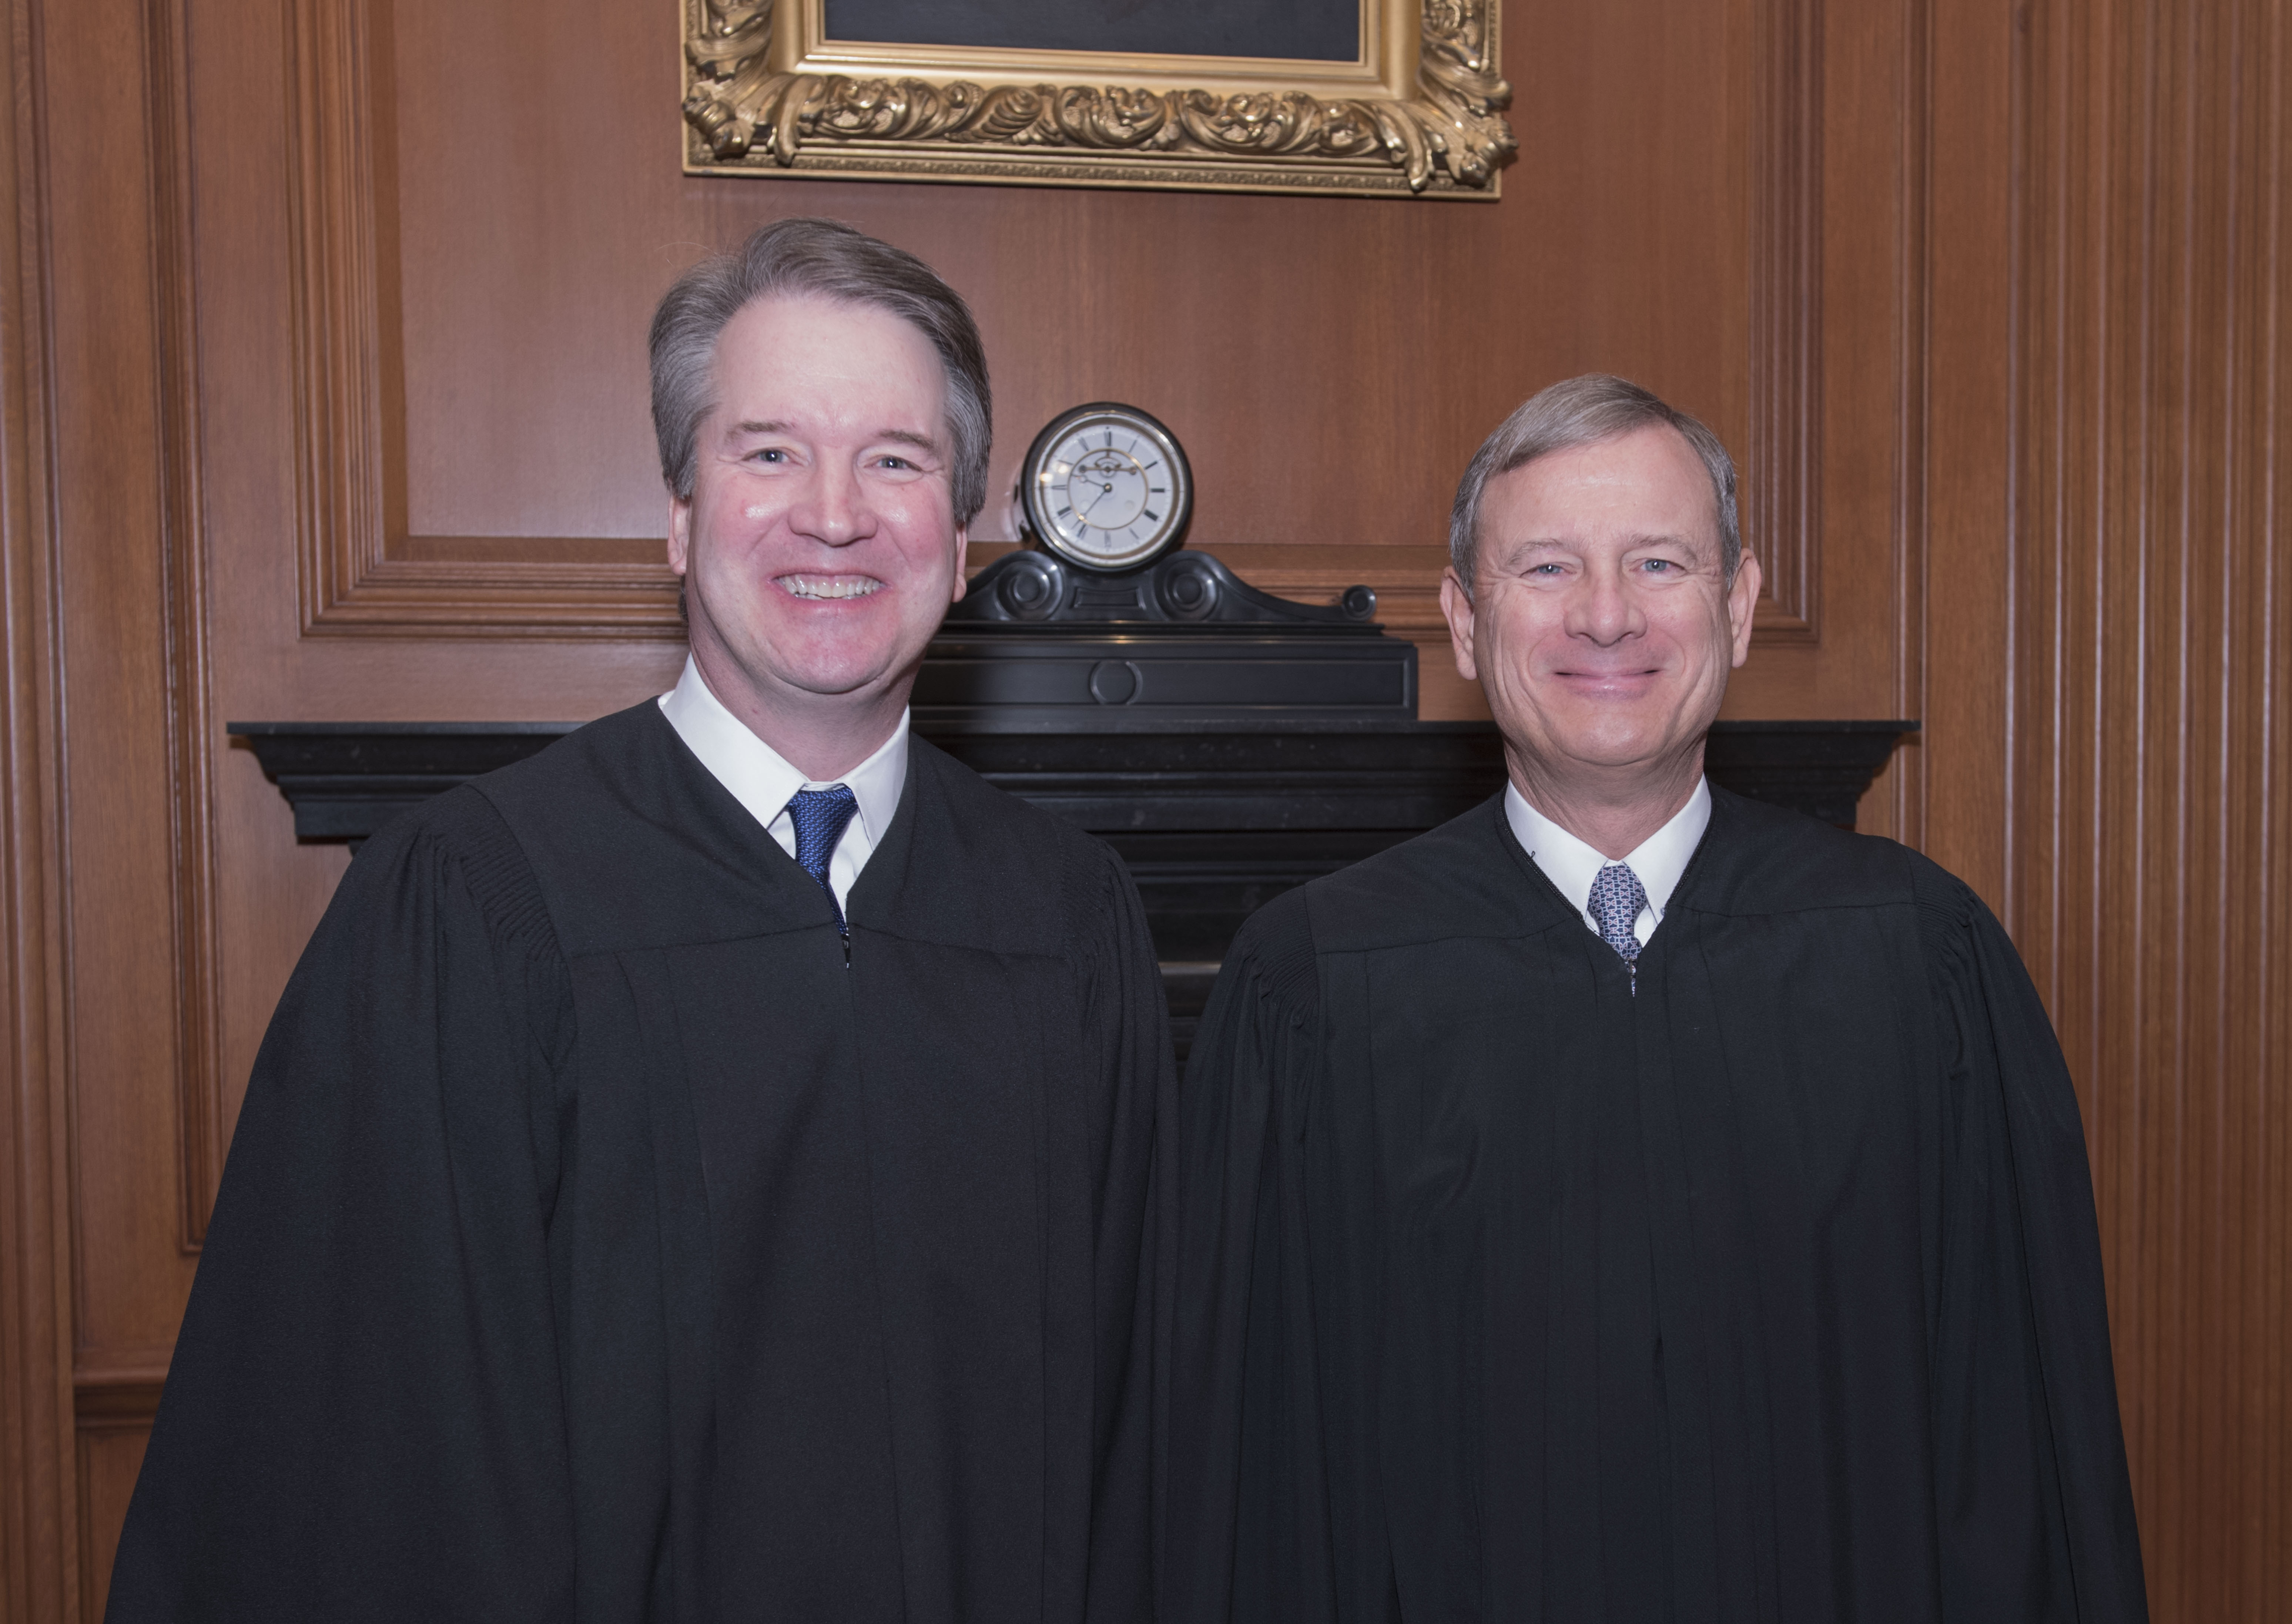 Justice Brett M. Kavanaugh and Chief Justice John G. Roberts, Jr. Credit: Fred Schilling, Collection of the Supreme Court of the United States.